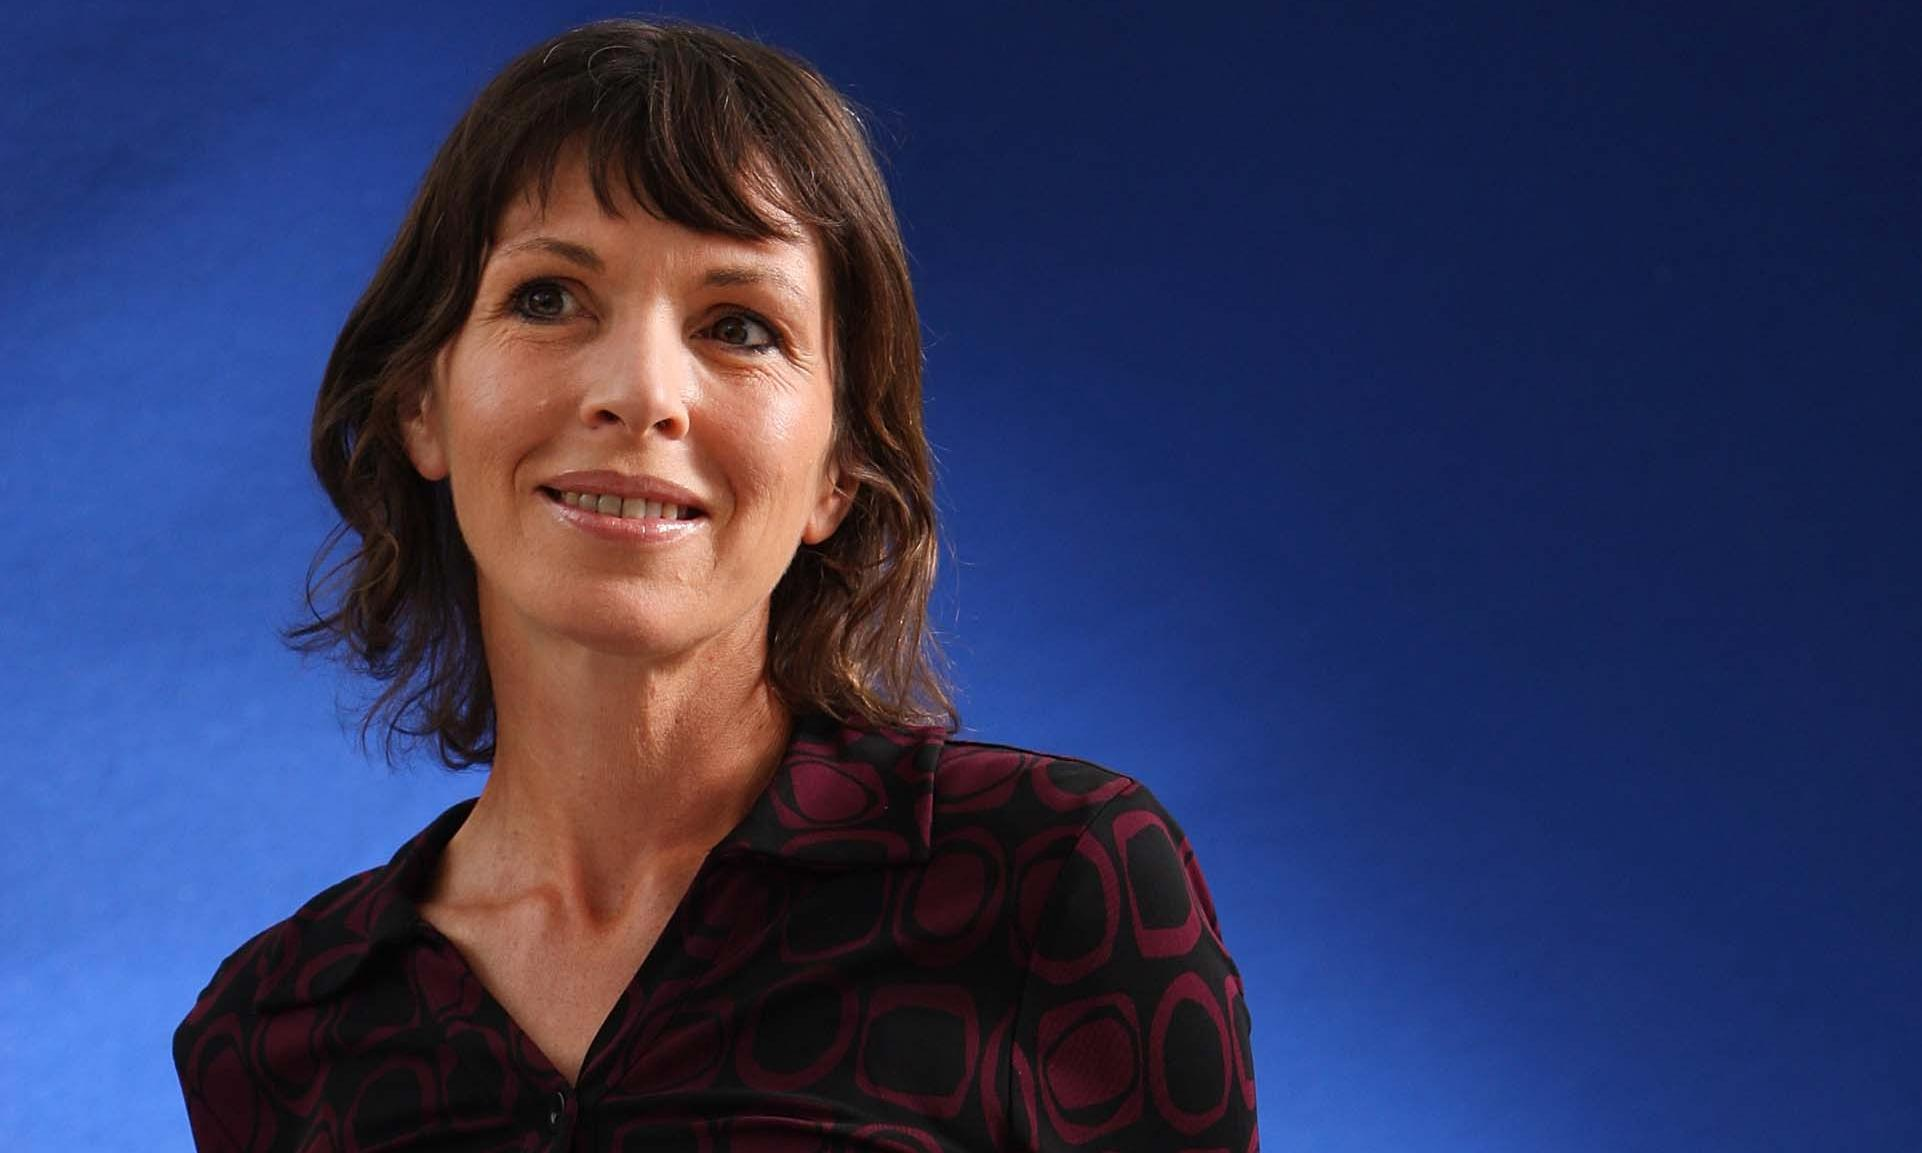 Rachel Cusk archive snapped up by library – despite burnt and lost manuscripts